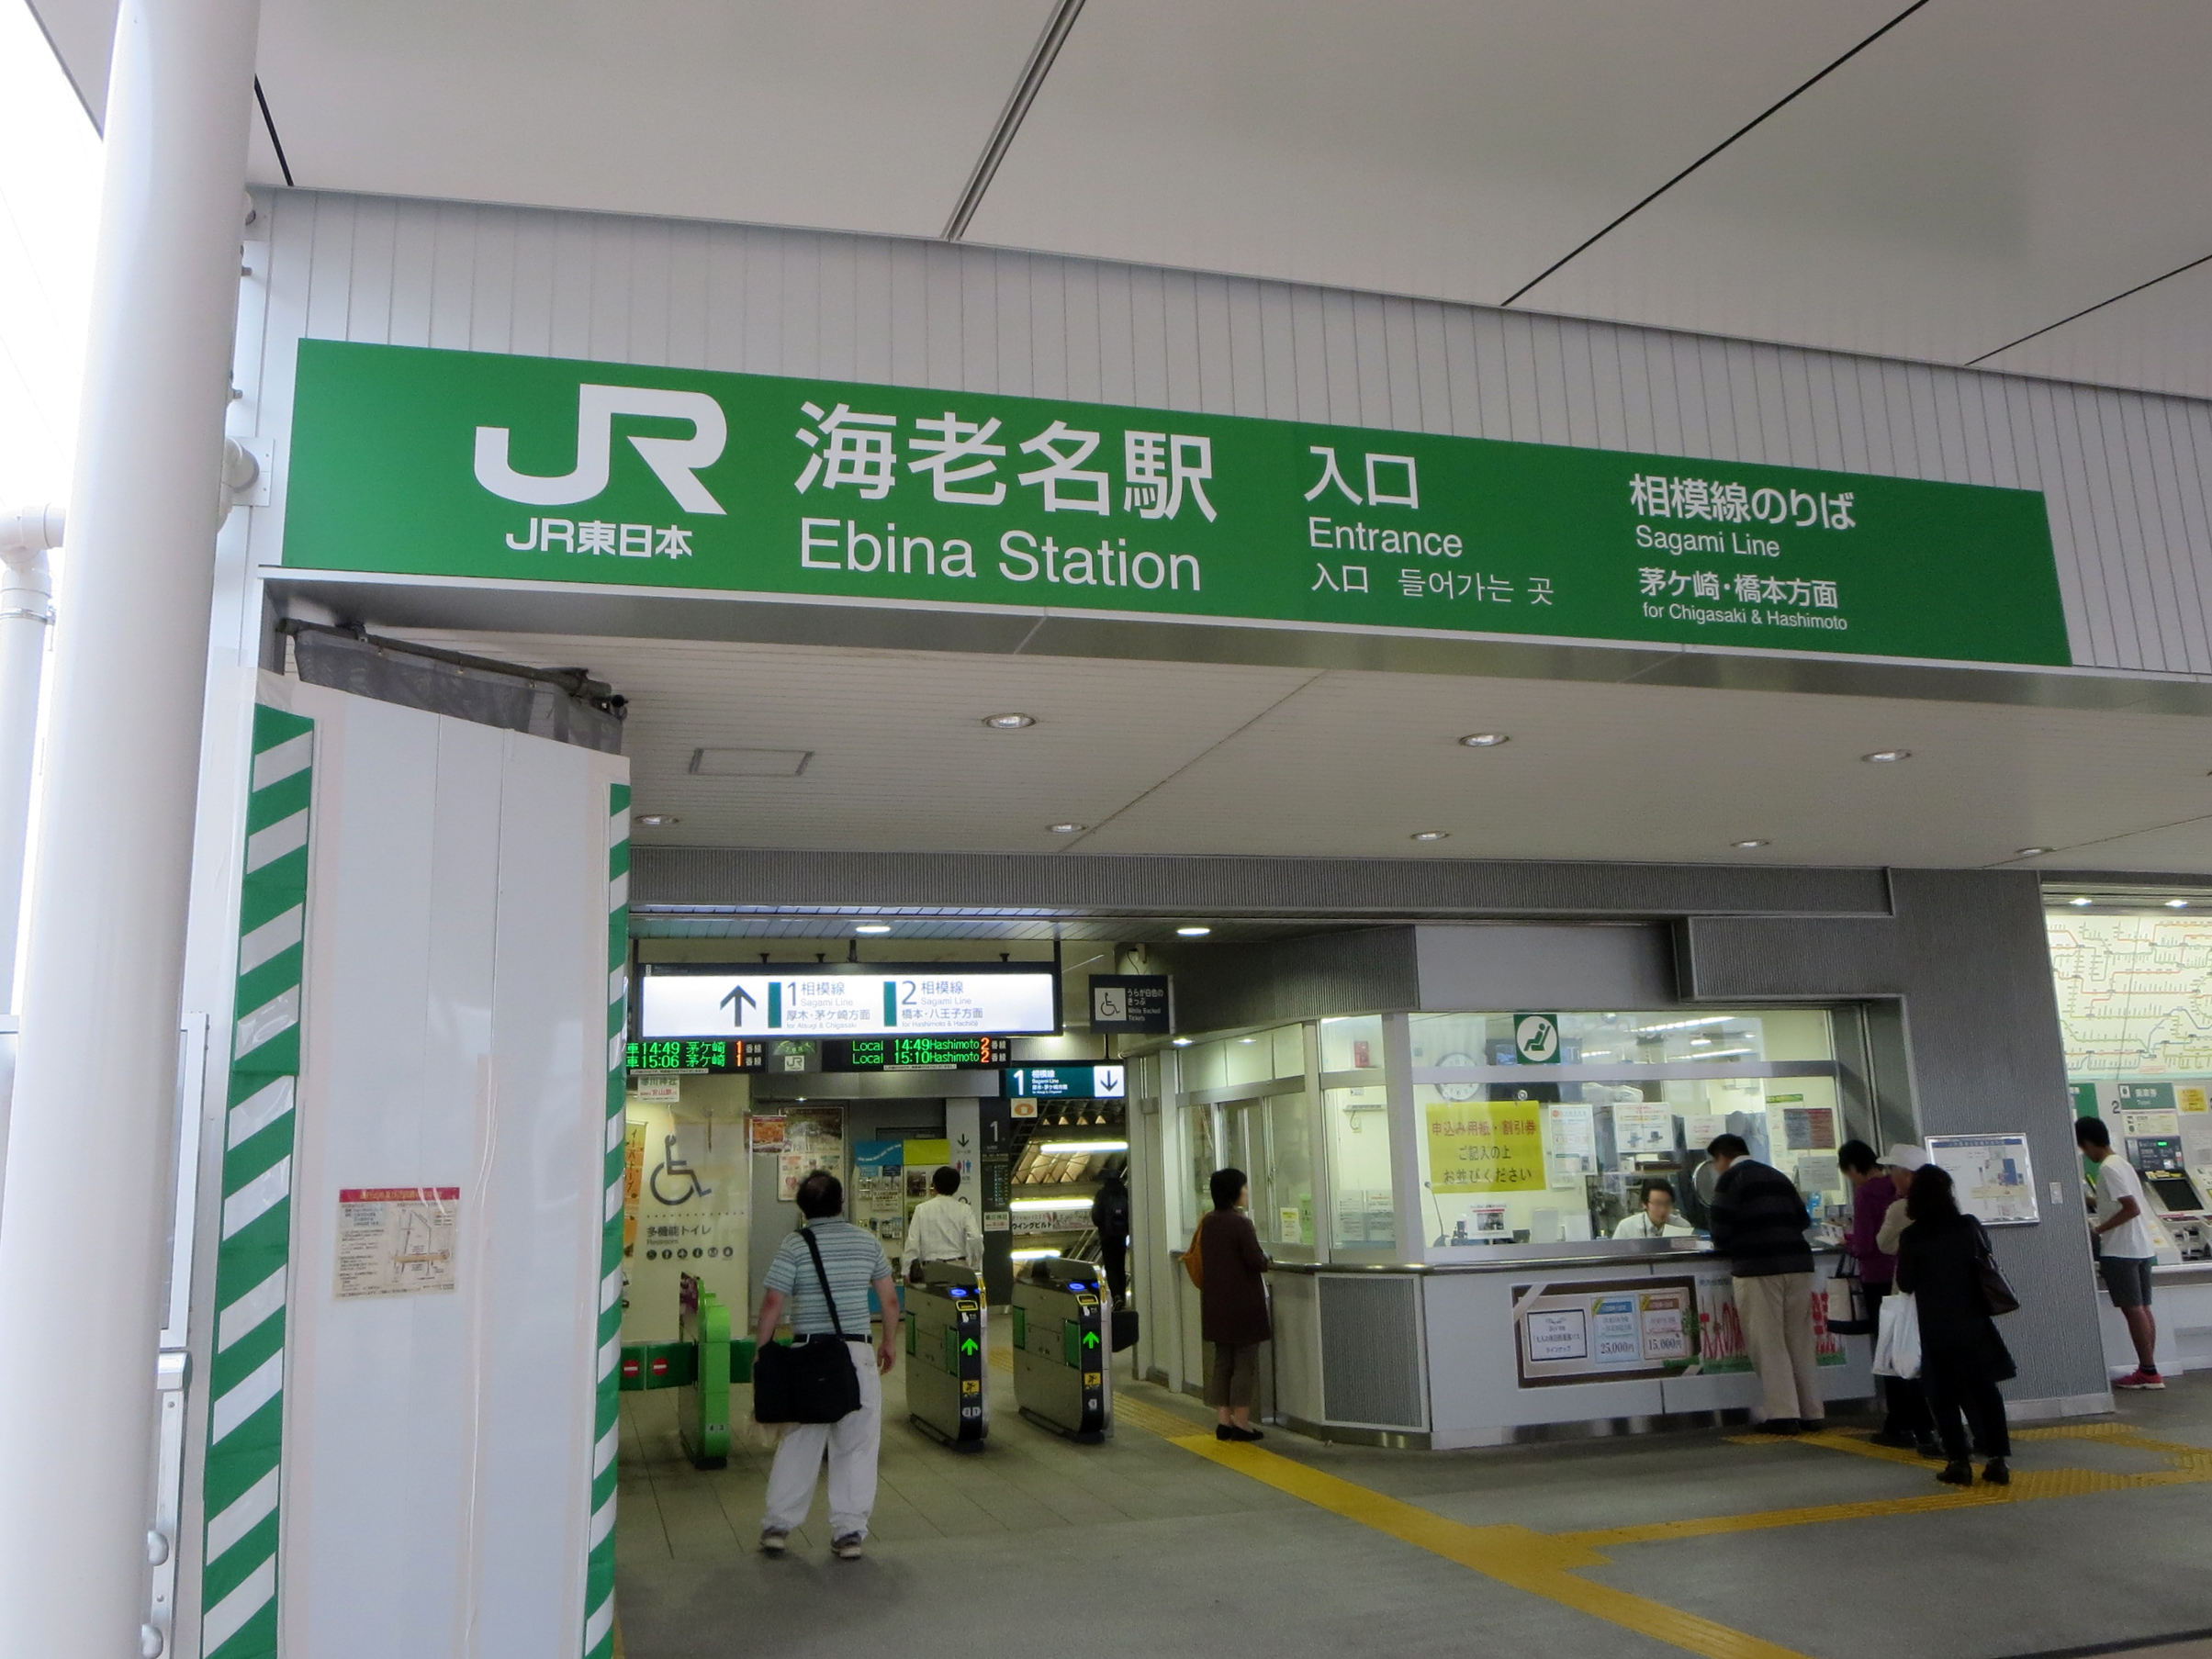 https://upload.wikimedia.org/wikipedia/commons/8/8d/JR_Ebina_station_201510-01.jpg